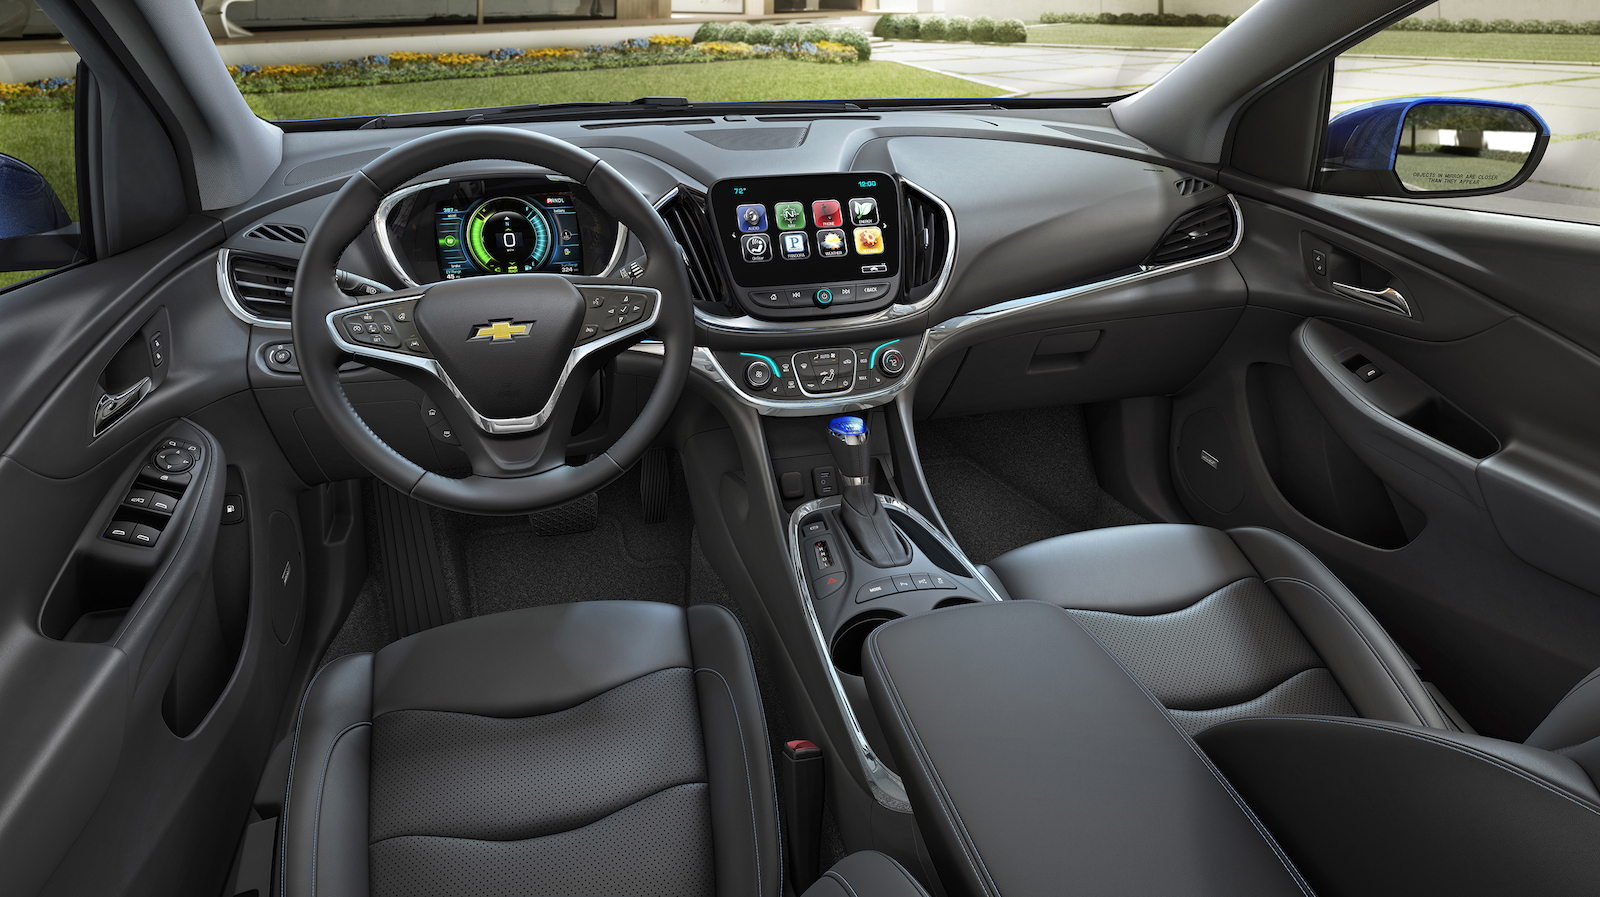 2019 Chevrolet Volt Concept photo - 5